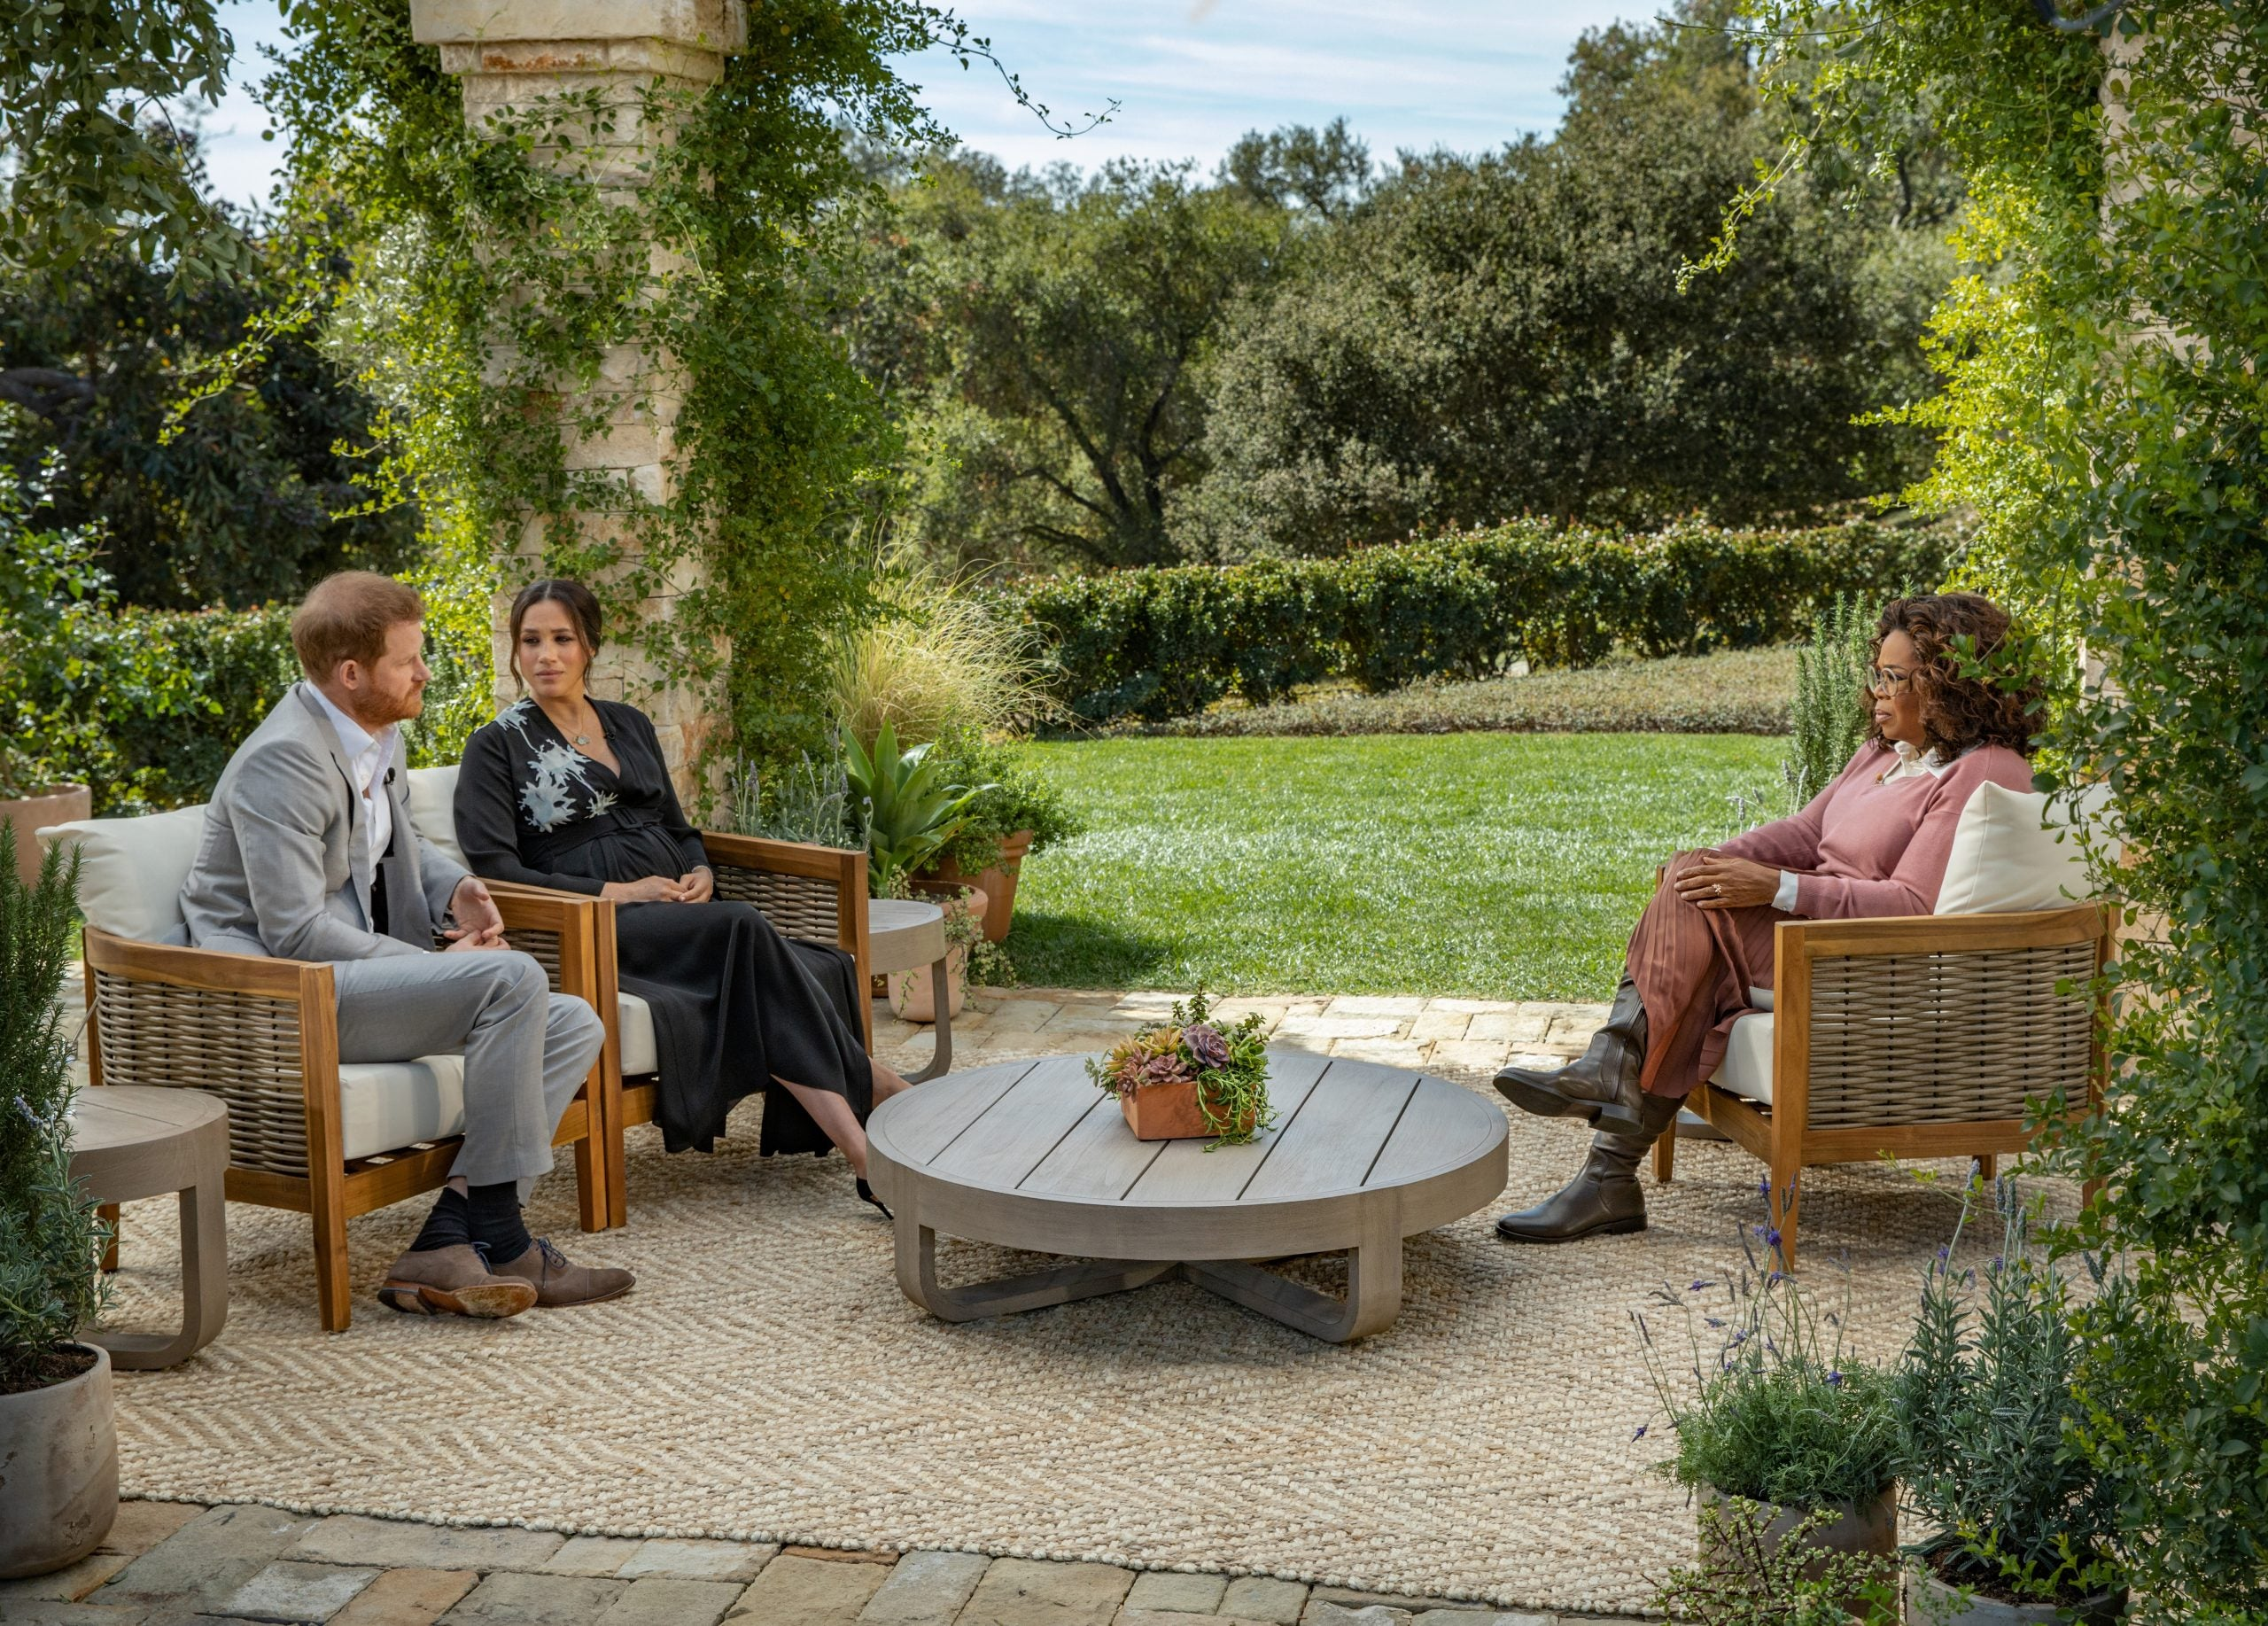 Why Harry and Meghan's Oprah interview was the most successful in royal history